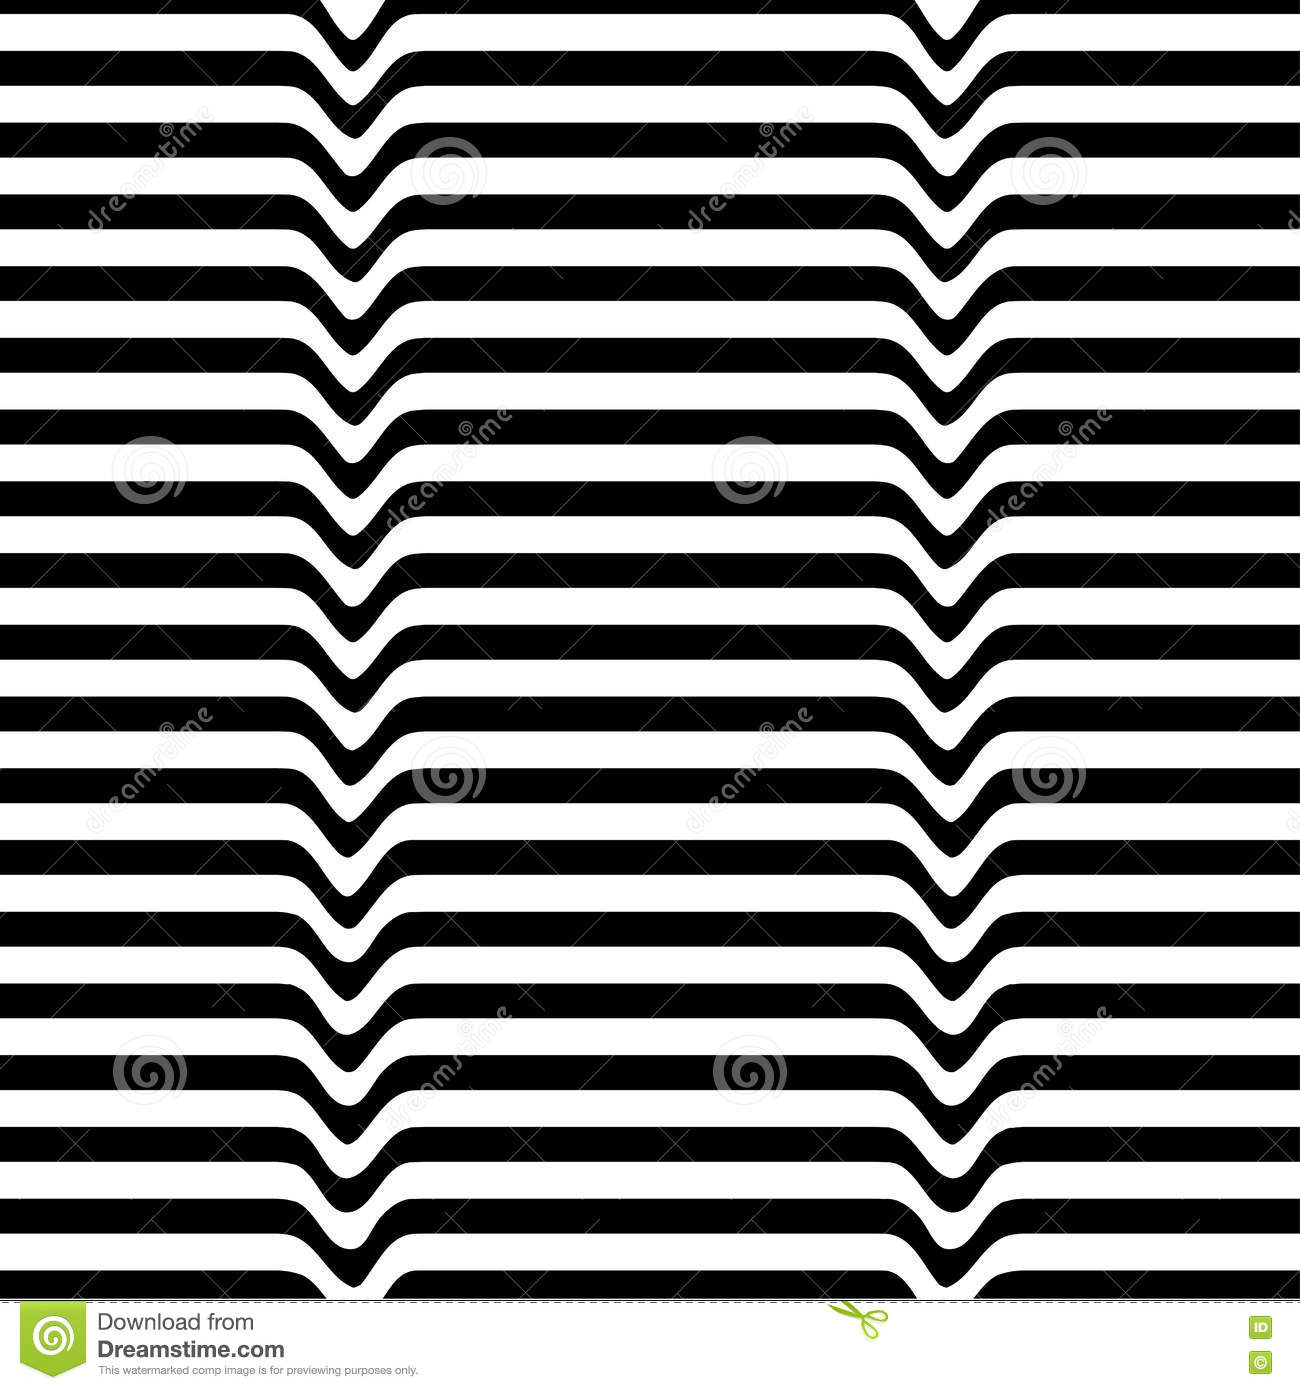 Monochrome Movement Illusion. White Black Wave Line Abstract Optical ...